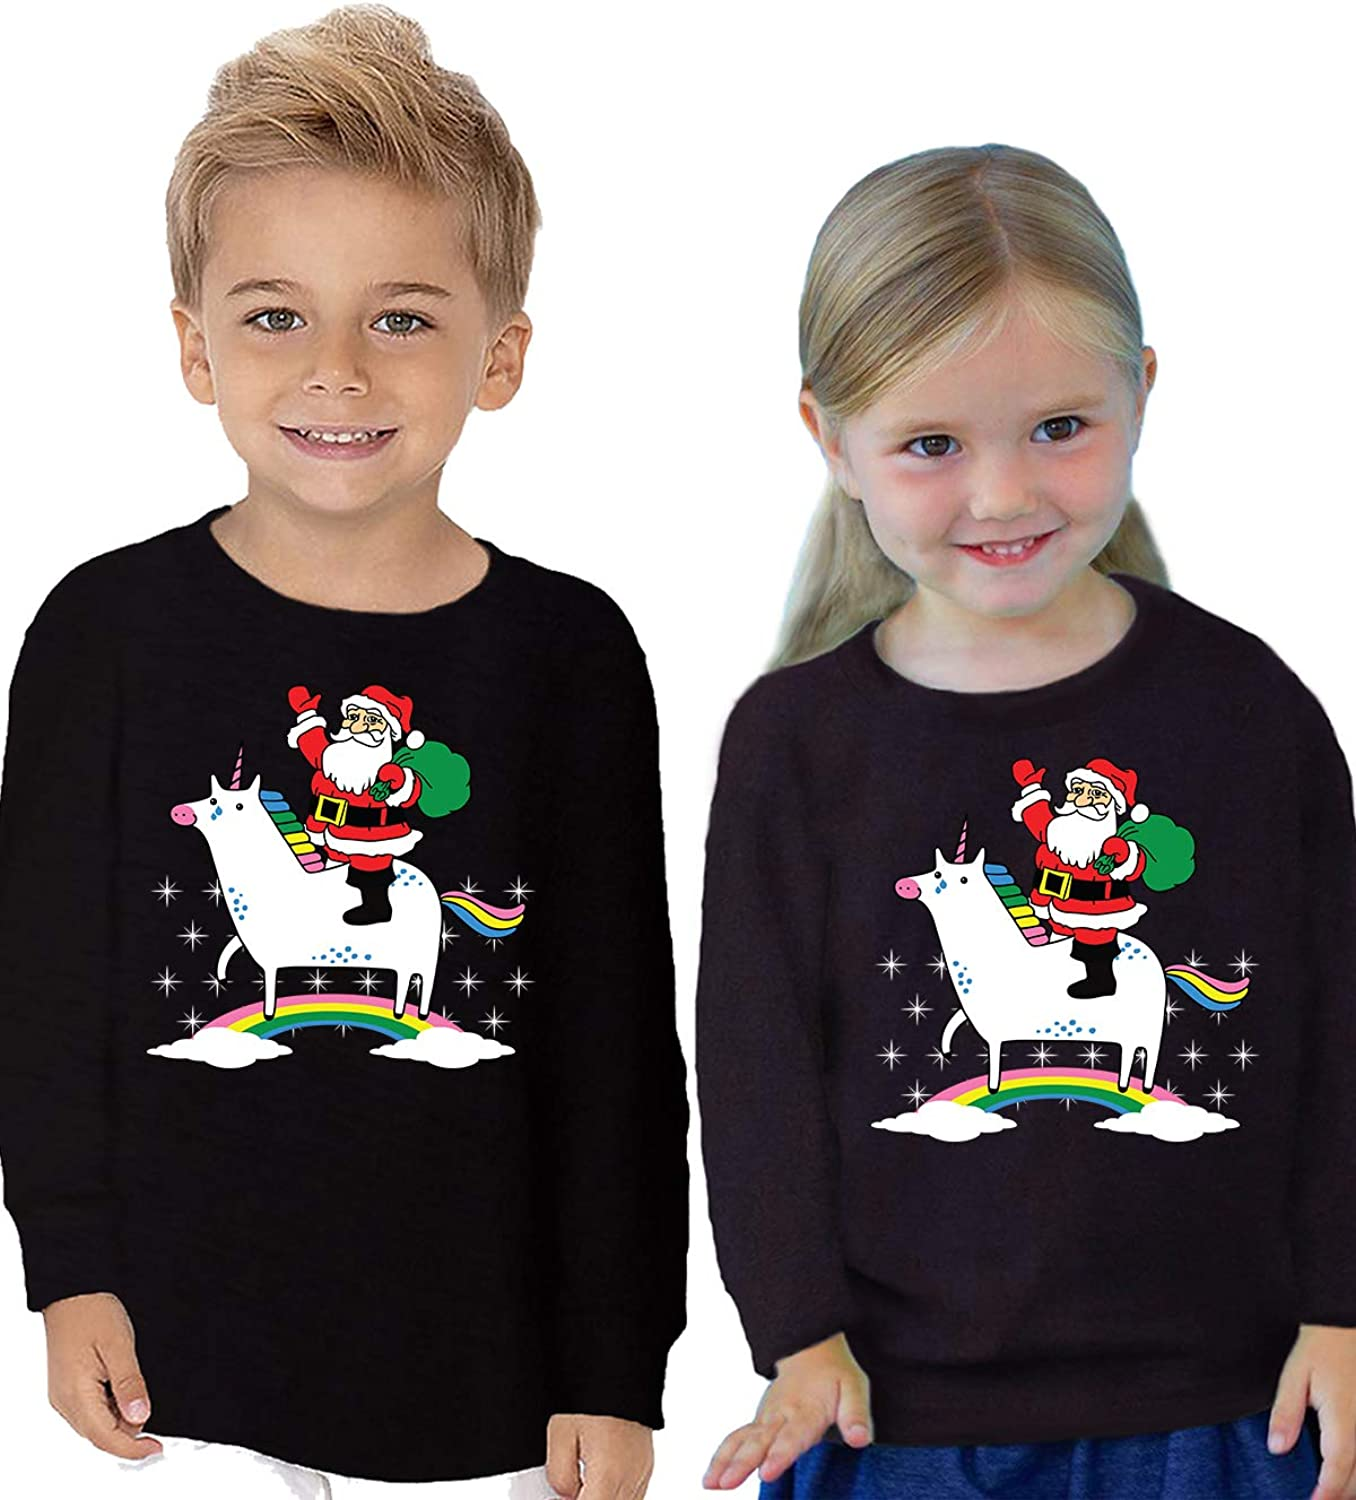 Awkward Styles Ugly Xmas Long Sleeve Shirt for Boys Girls Toddler Christmas Snowman Sketch Shirt